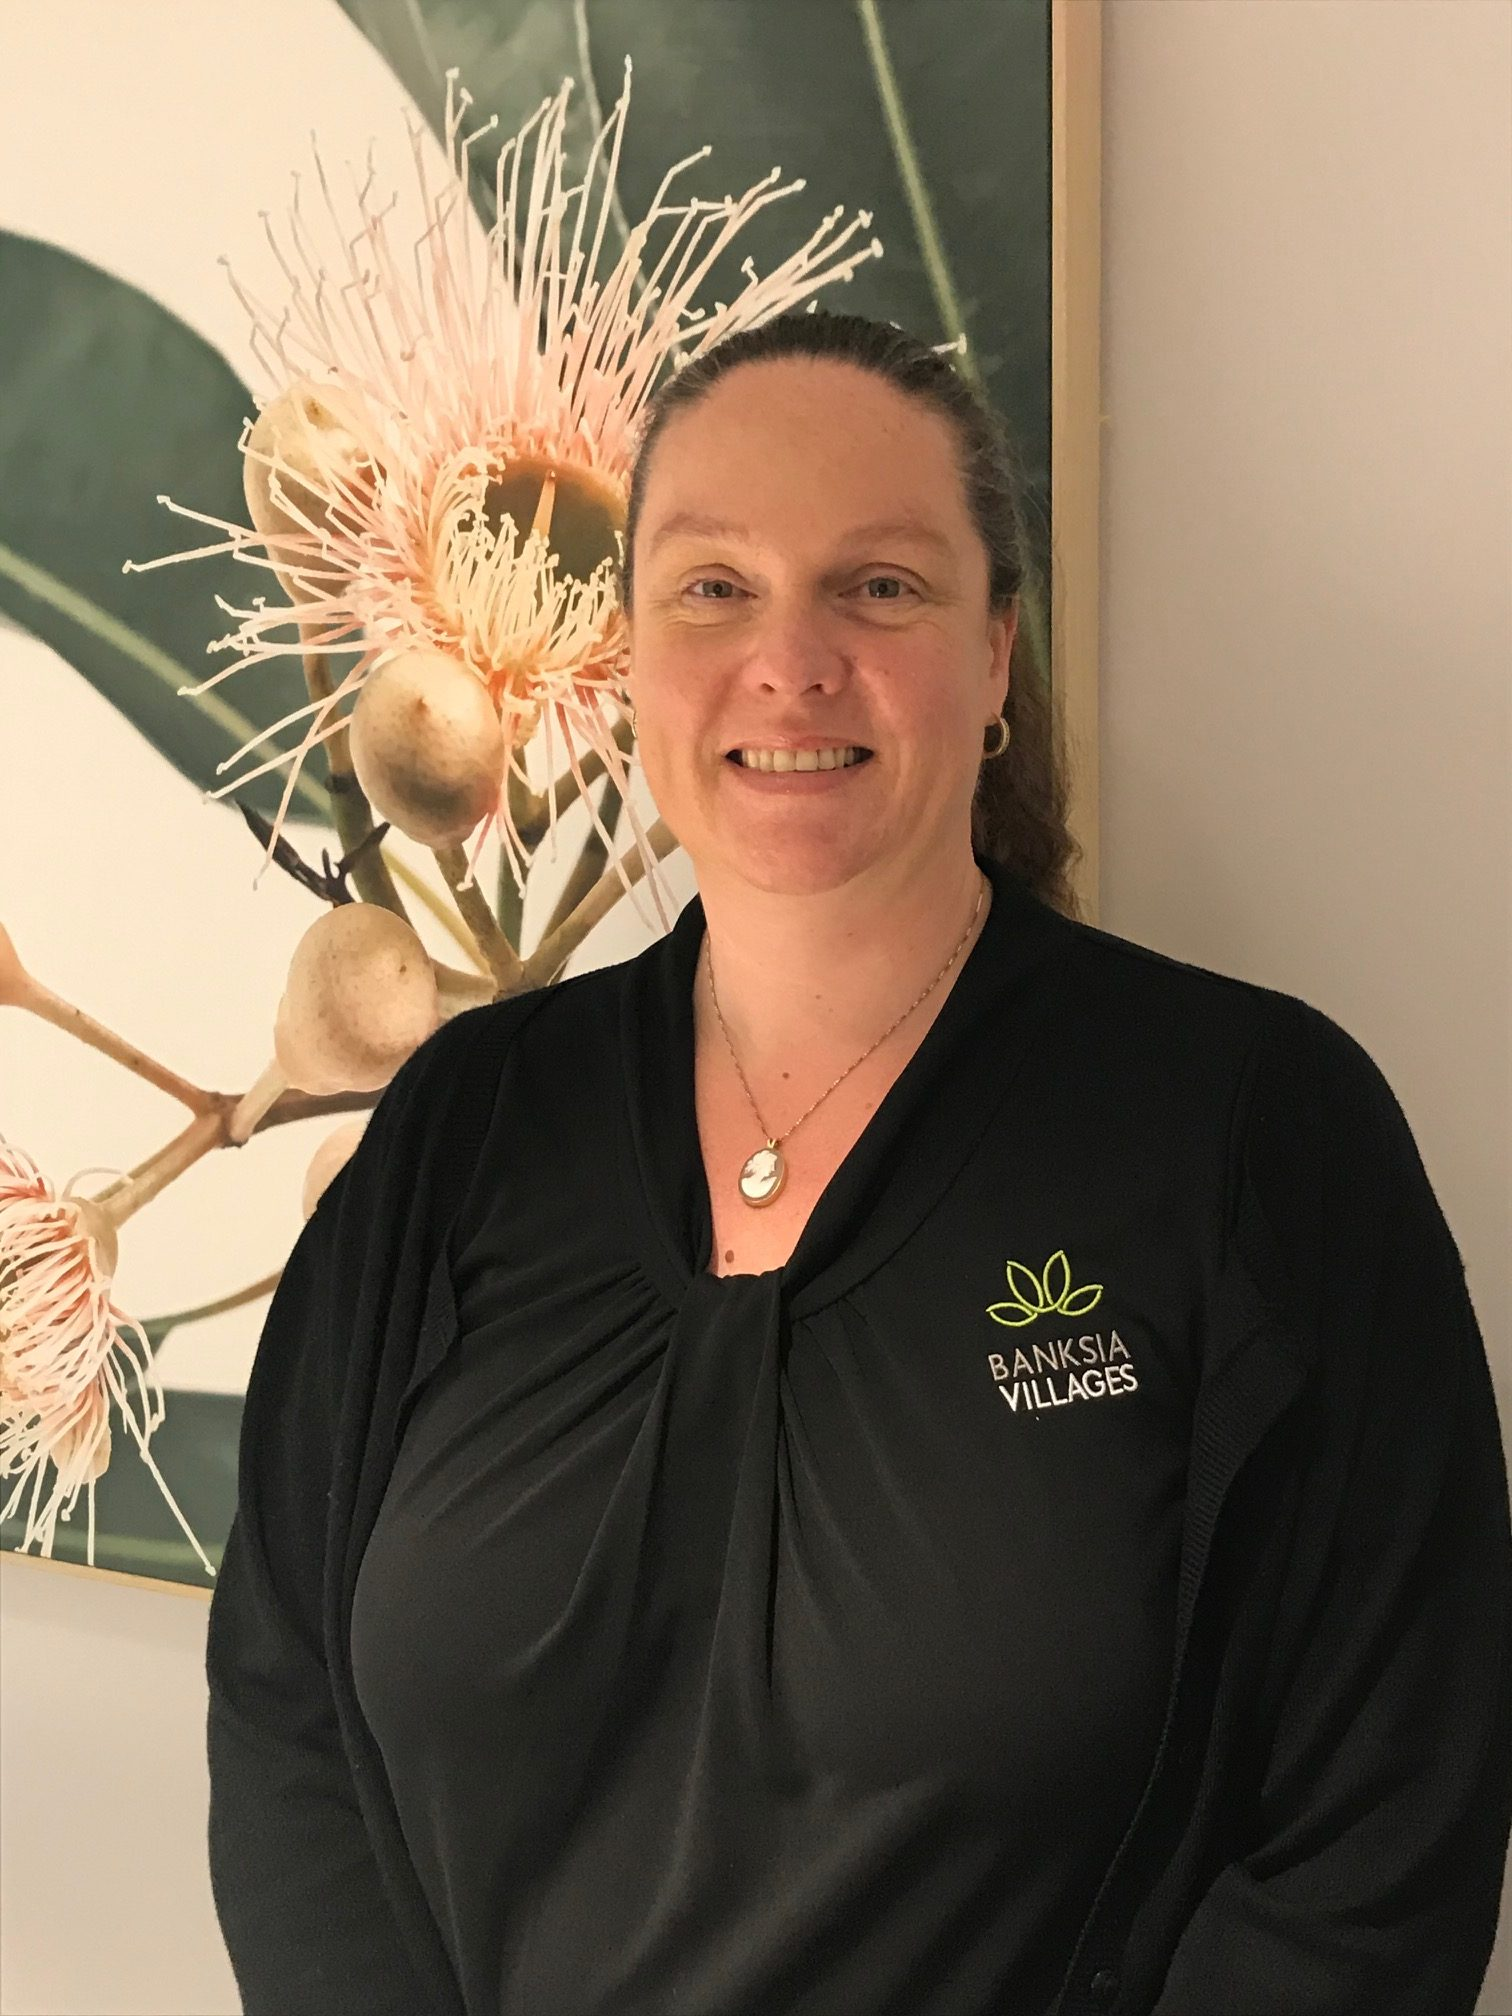 Elizabeth-Paterson-Finlay-Banksia-Villages-Project-Manager